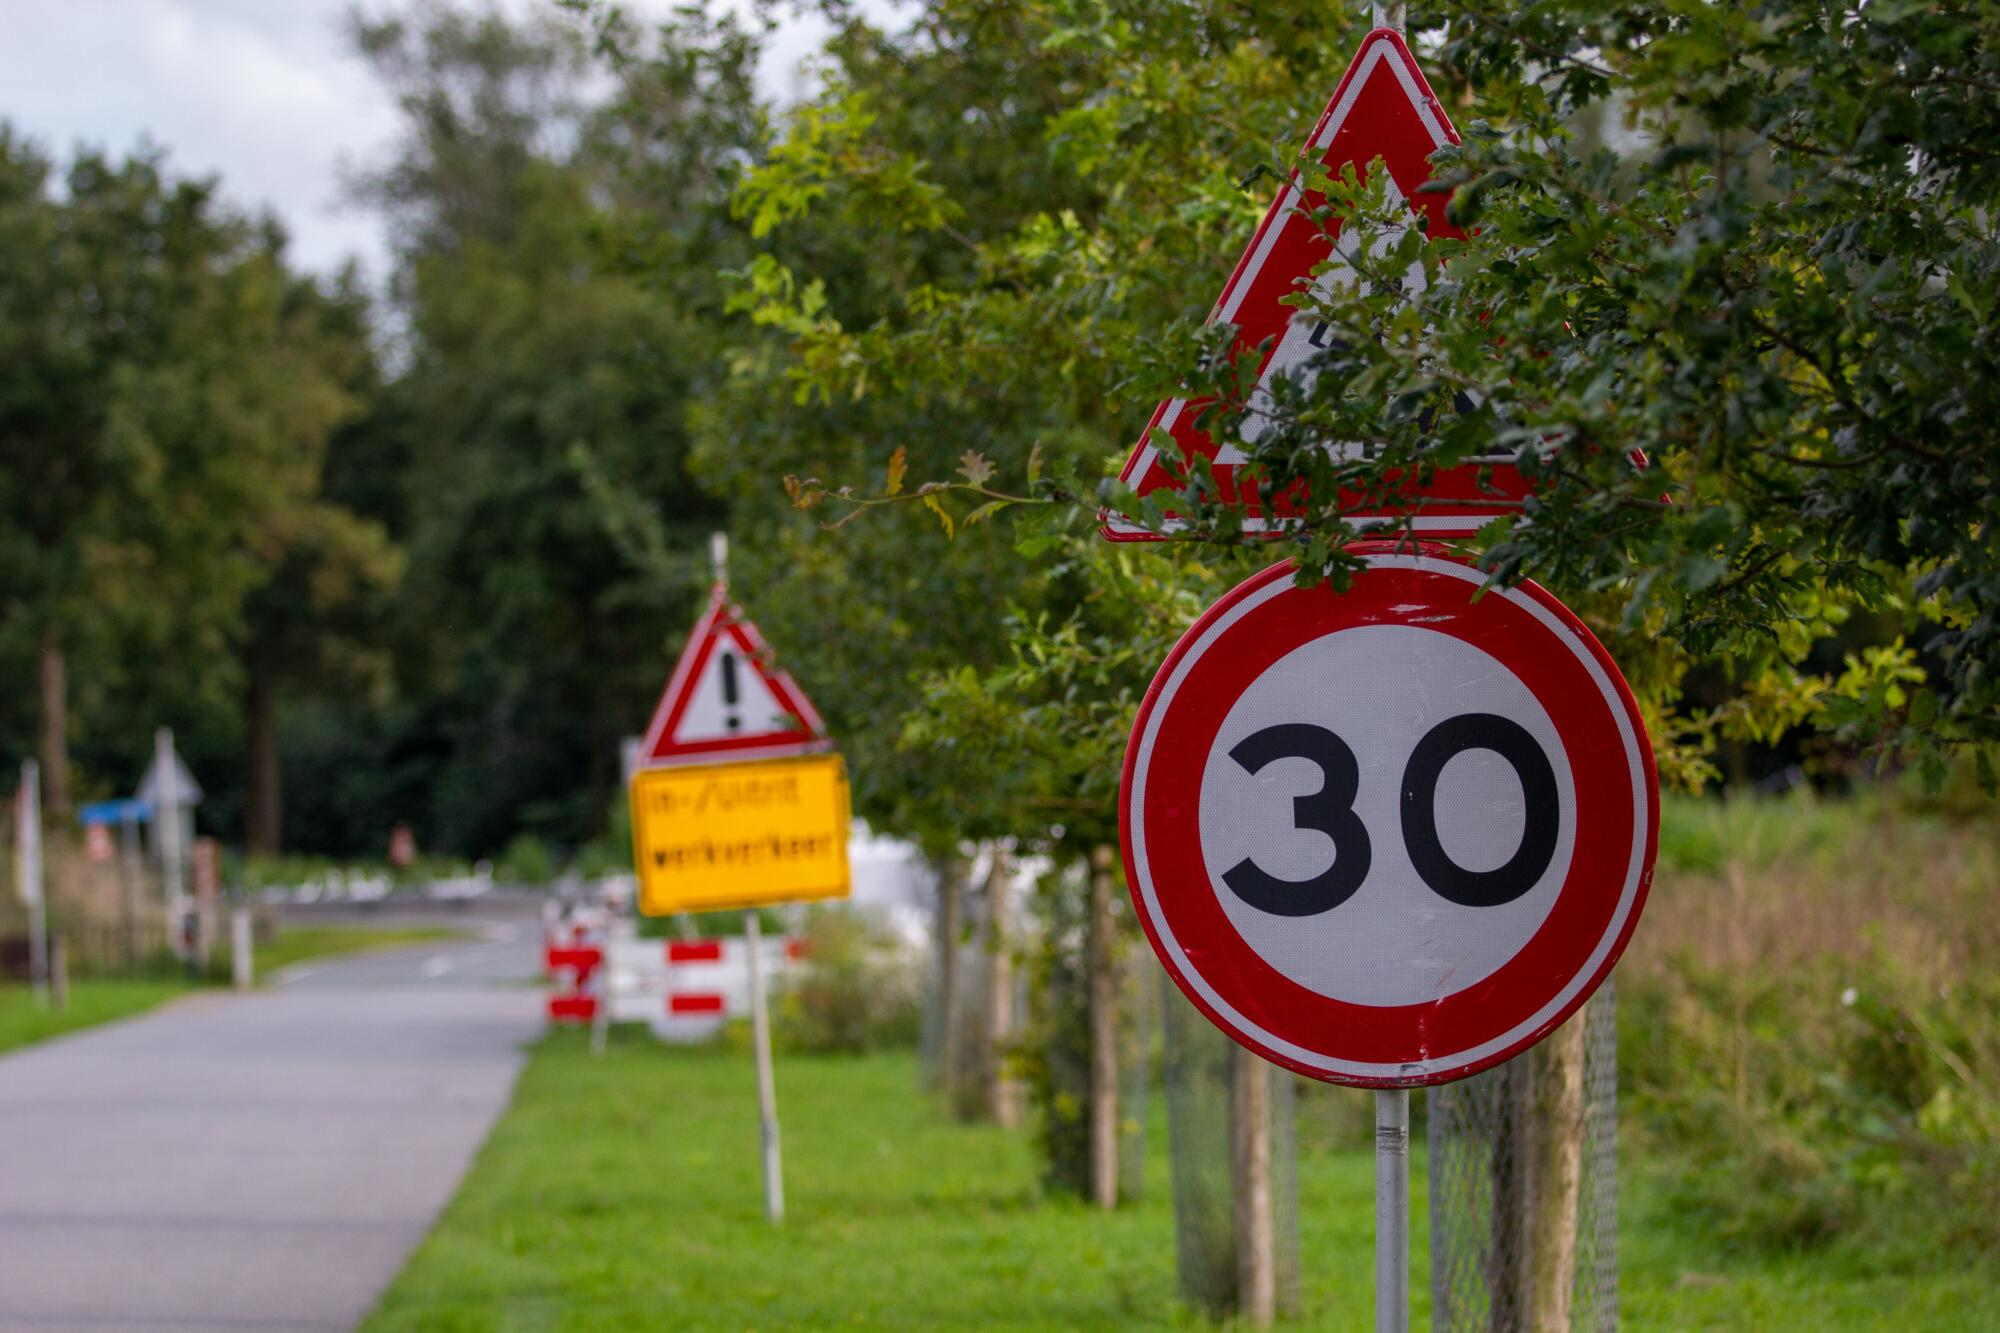 Building the 30km/h city: Brussels goes bold